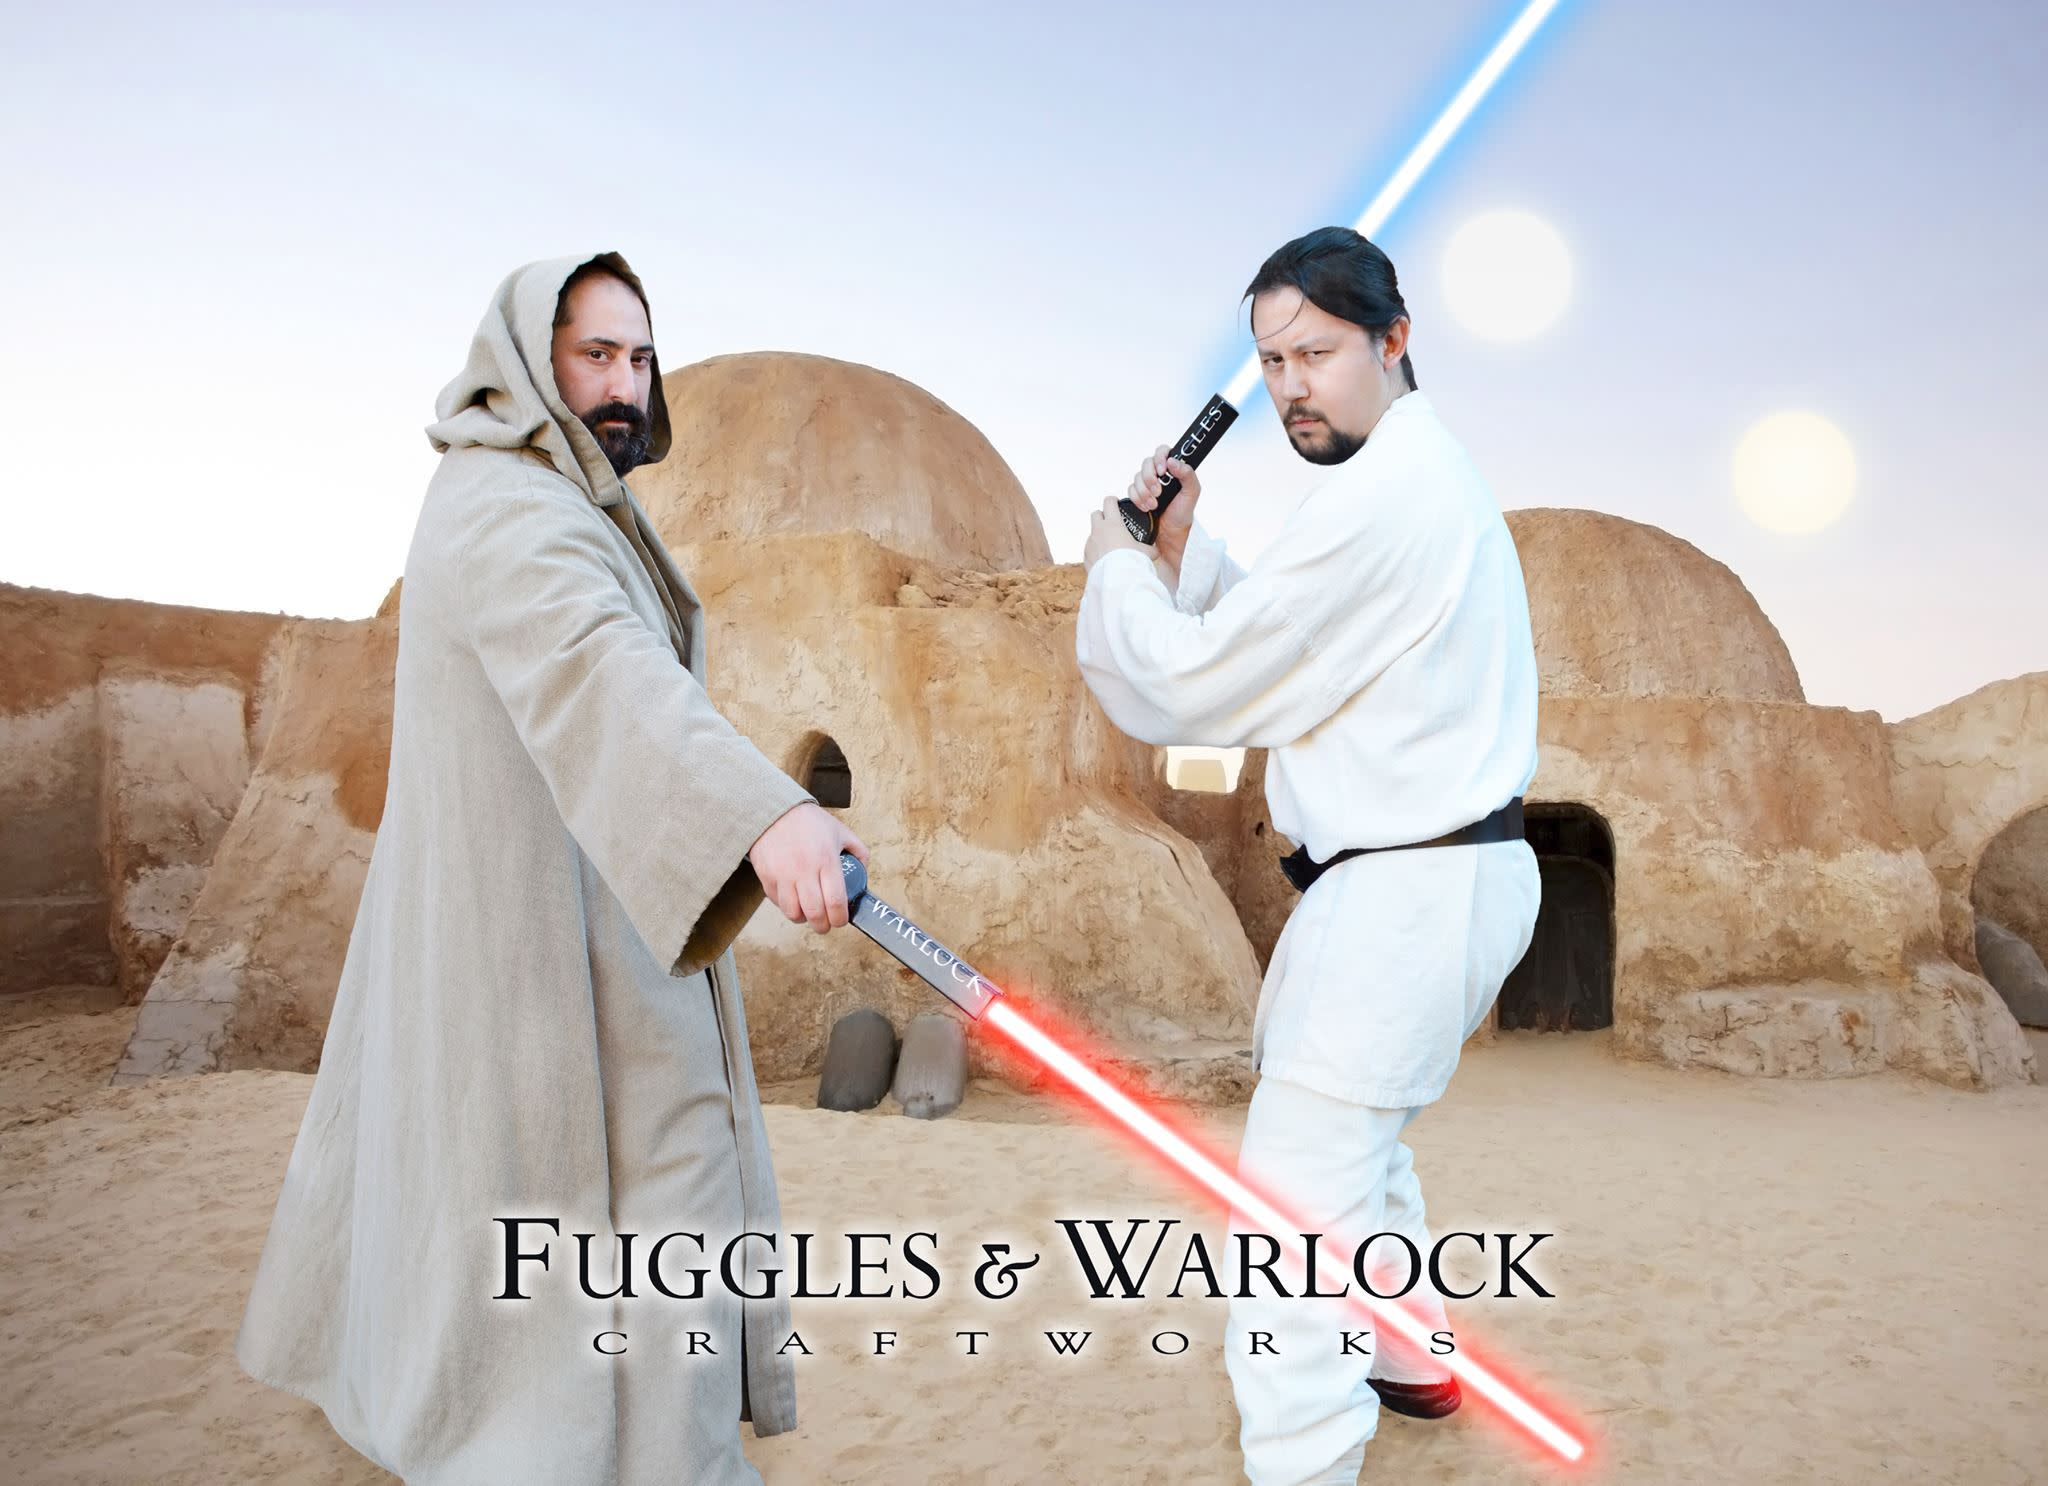 Fuggles (right) & Warlock (left); Sourced from the Fuggles & Warlock Facebook page